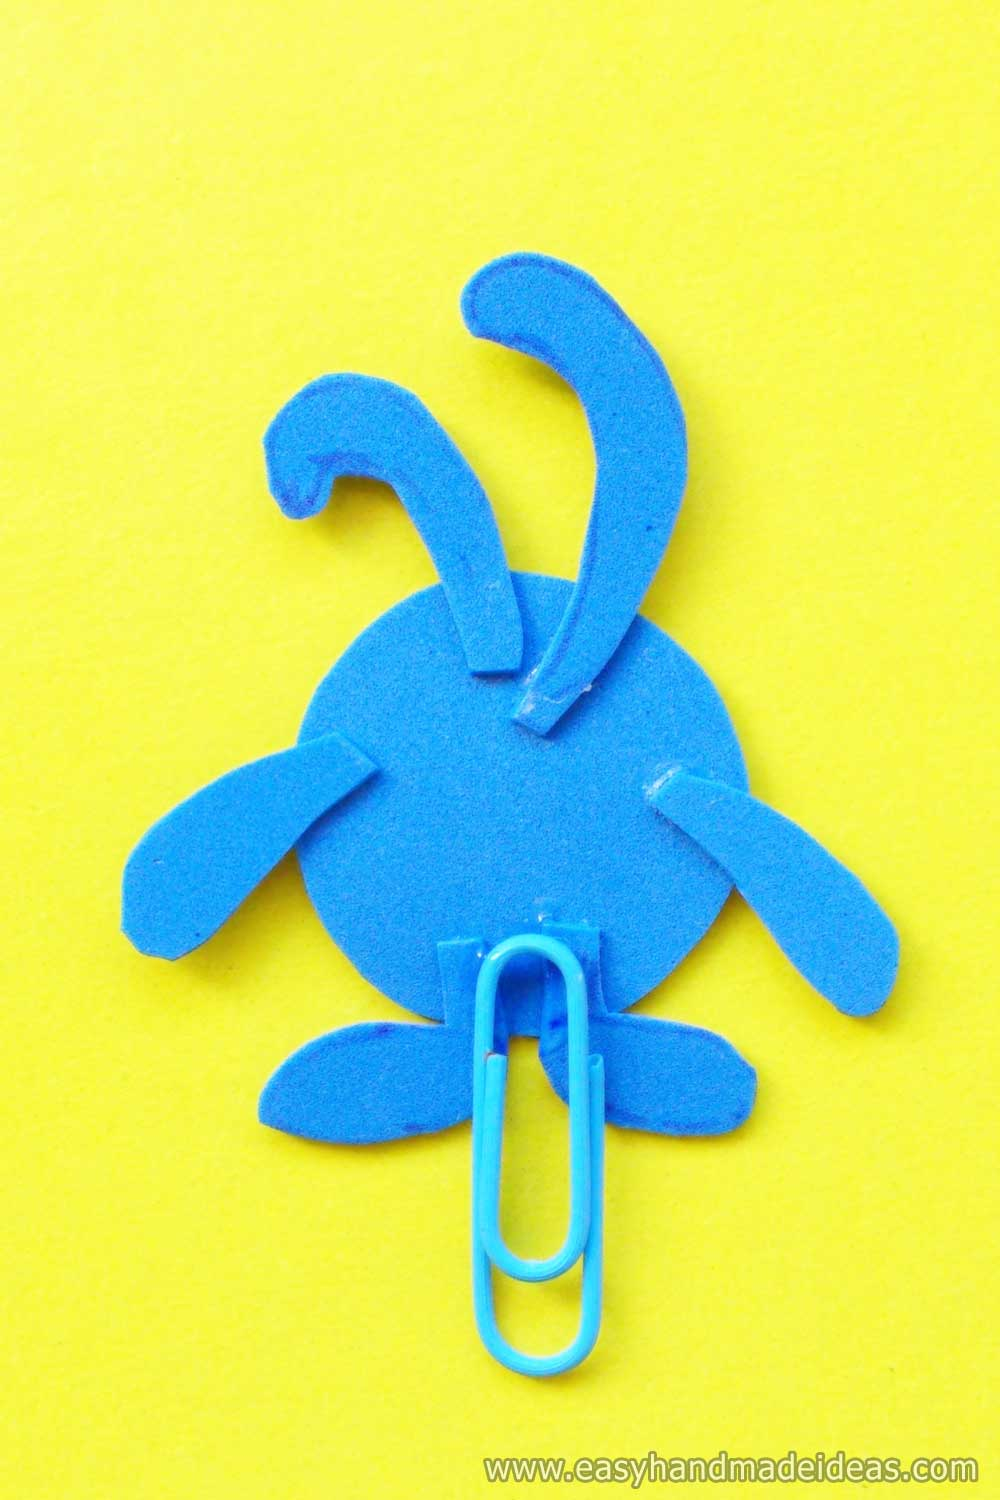 Glued Paper Clip with a Rabbit